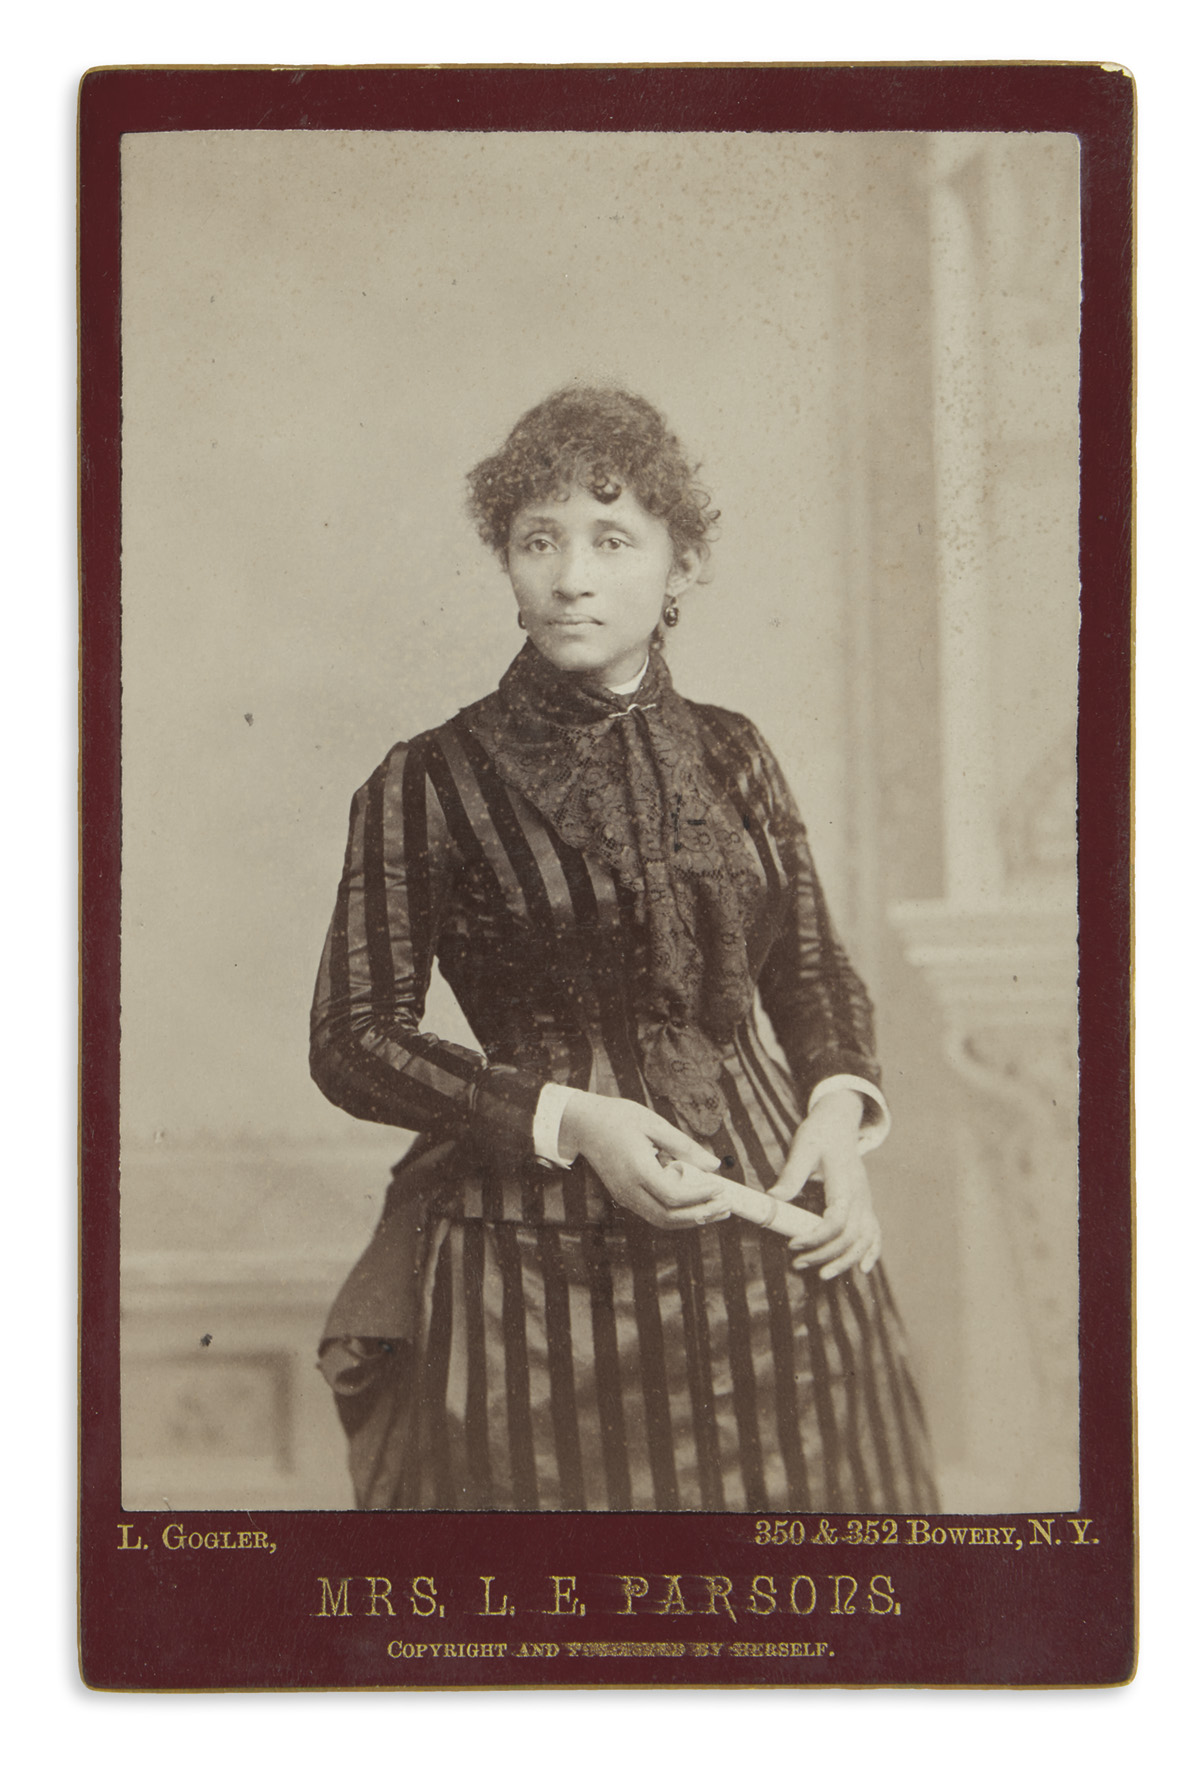 (RADICALISM.) Gogler, L.; photographer. Cabinet card of the labor organizer Lucy Parsons.